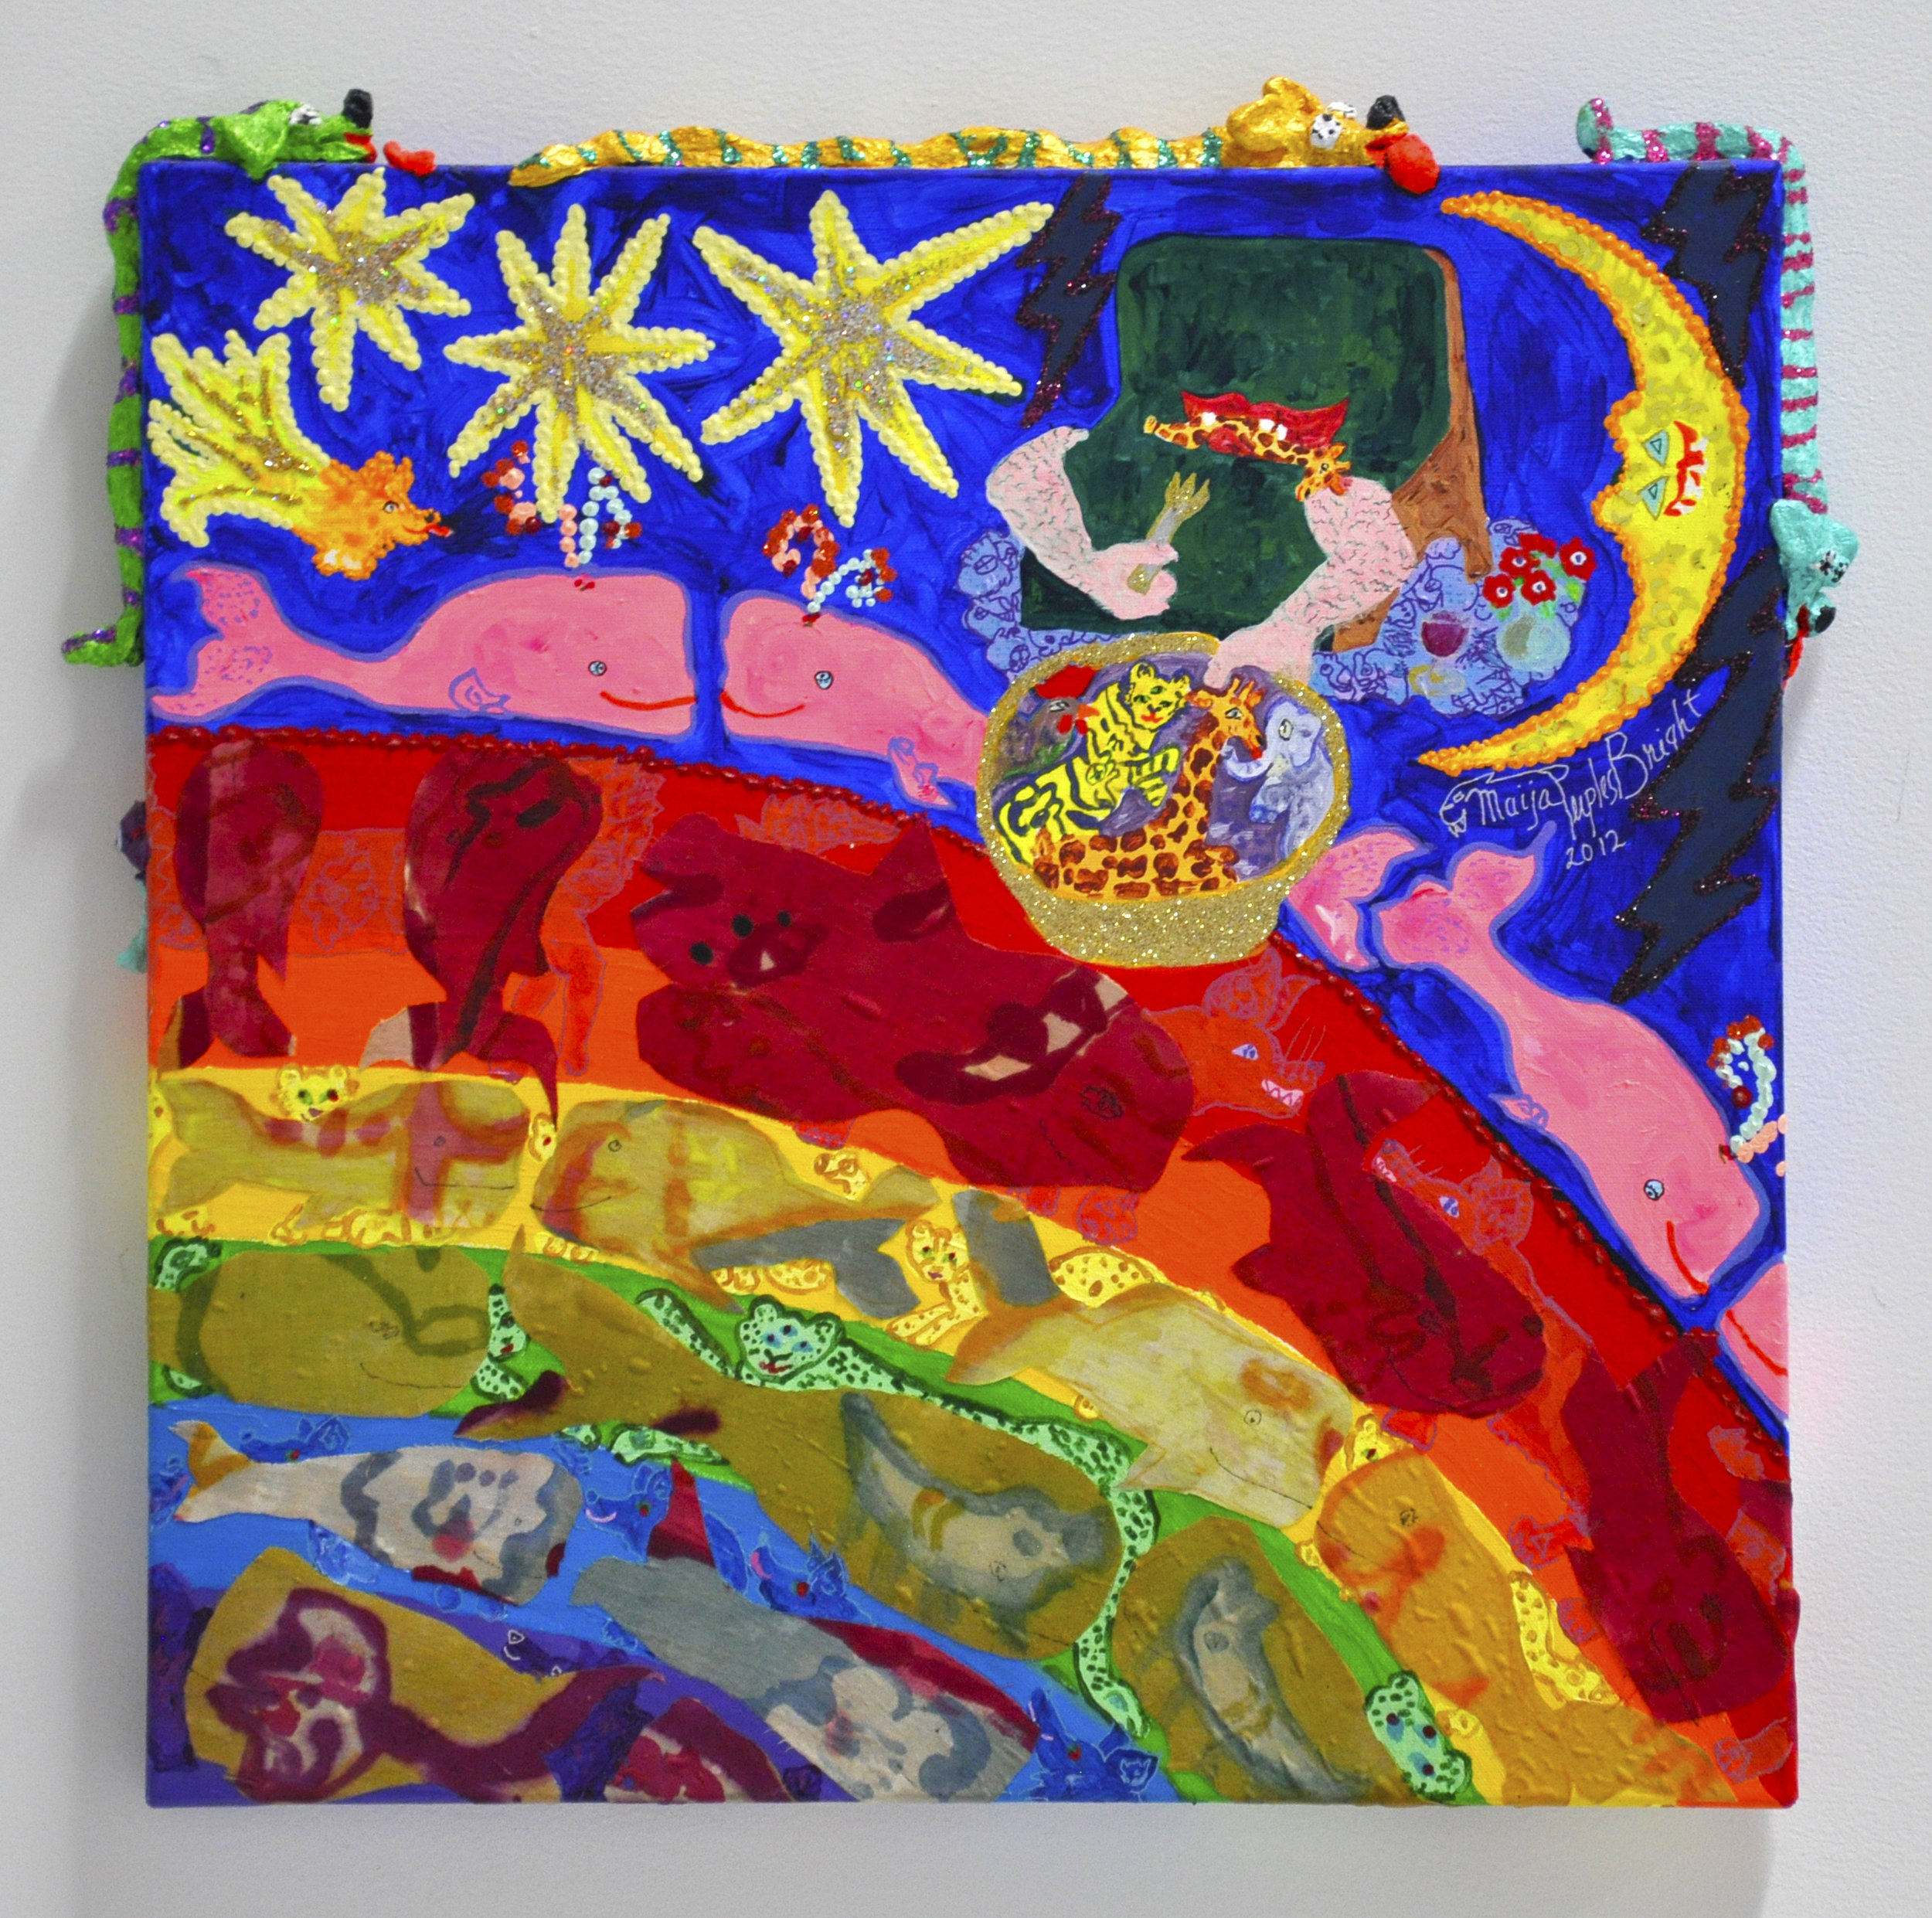 "Maija Peeples-Bright, ""Slant Step Feeds 'Some Whale over the Rainbow'"", acrylic paint, glitter, fabric, air dry clay on canvas, 21 x 2 x 22 in, 2012"